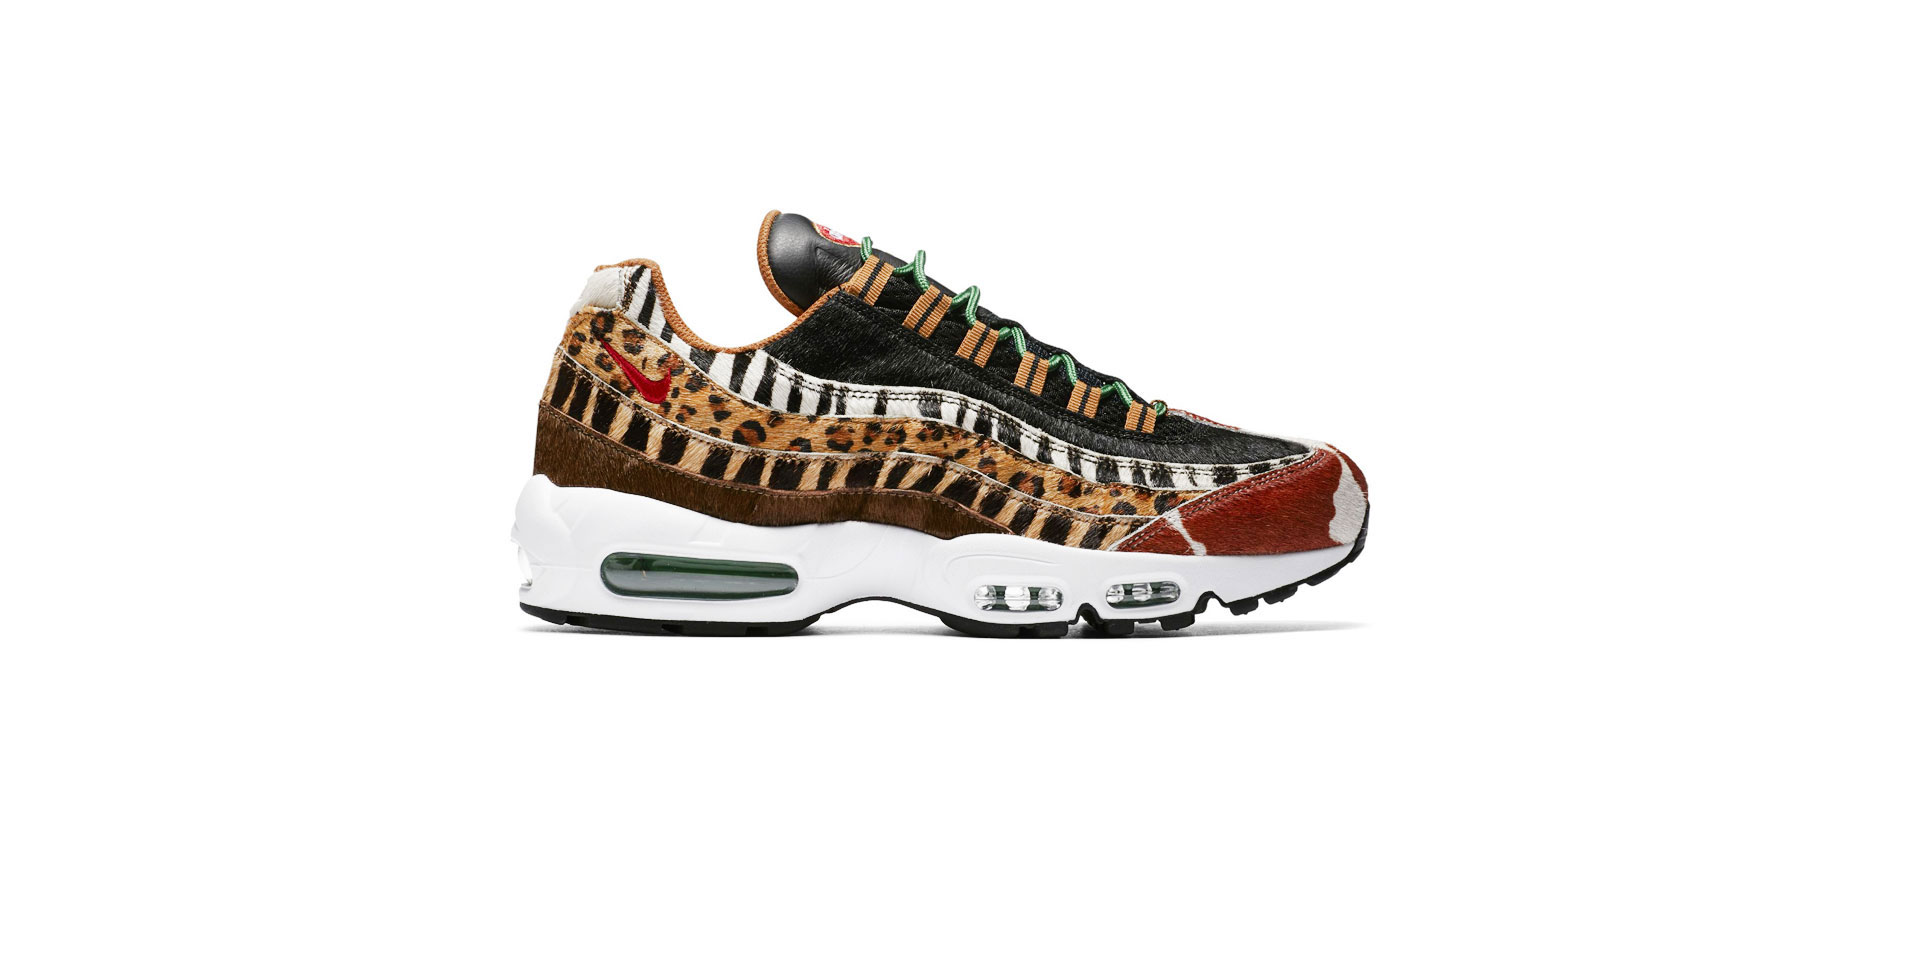 NIKE AIR MAX 95 DLX - PONY/SPORT RED - BLACK - CLASSIC GREEN